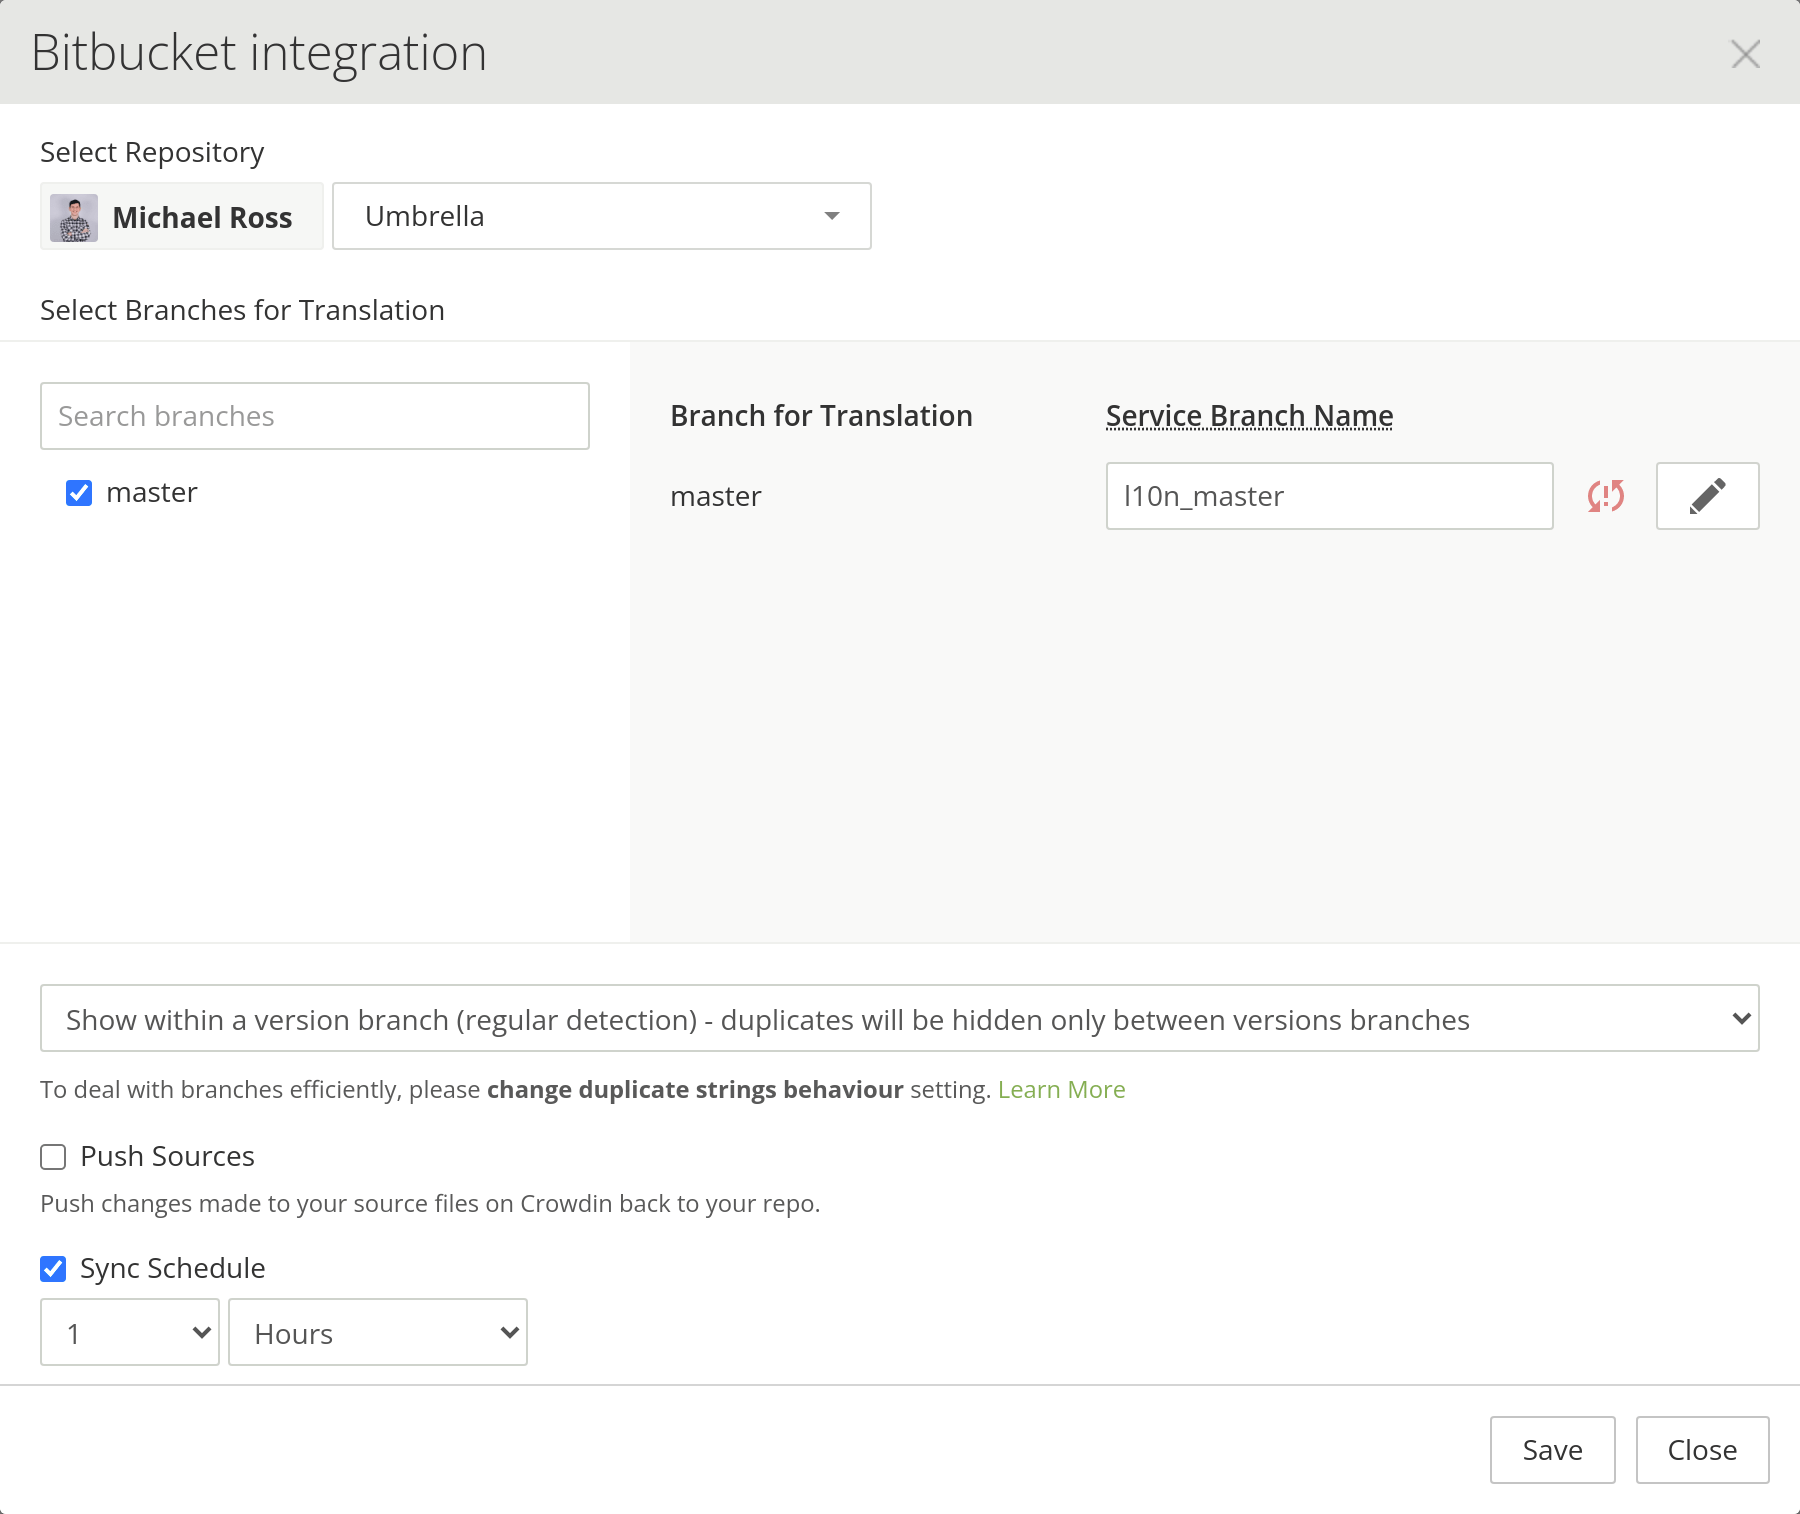 Bitbucket Integration Unconfigured